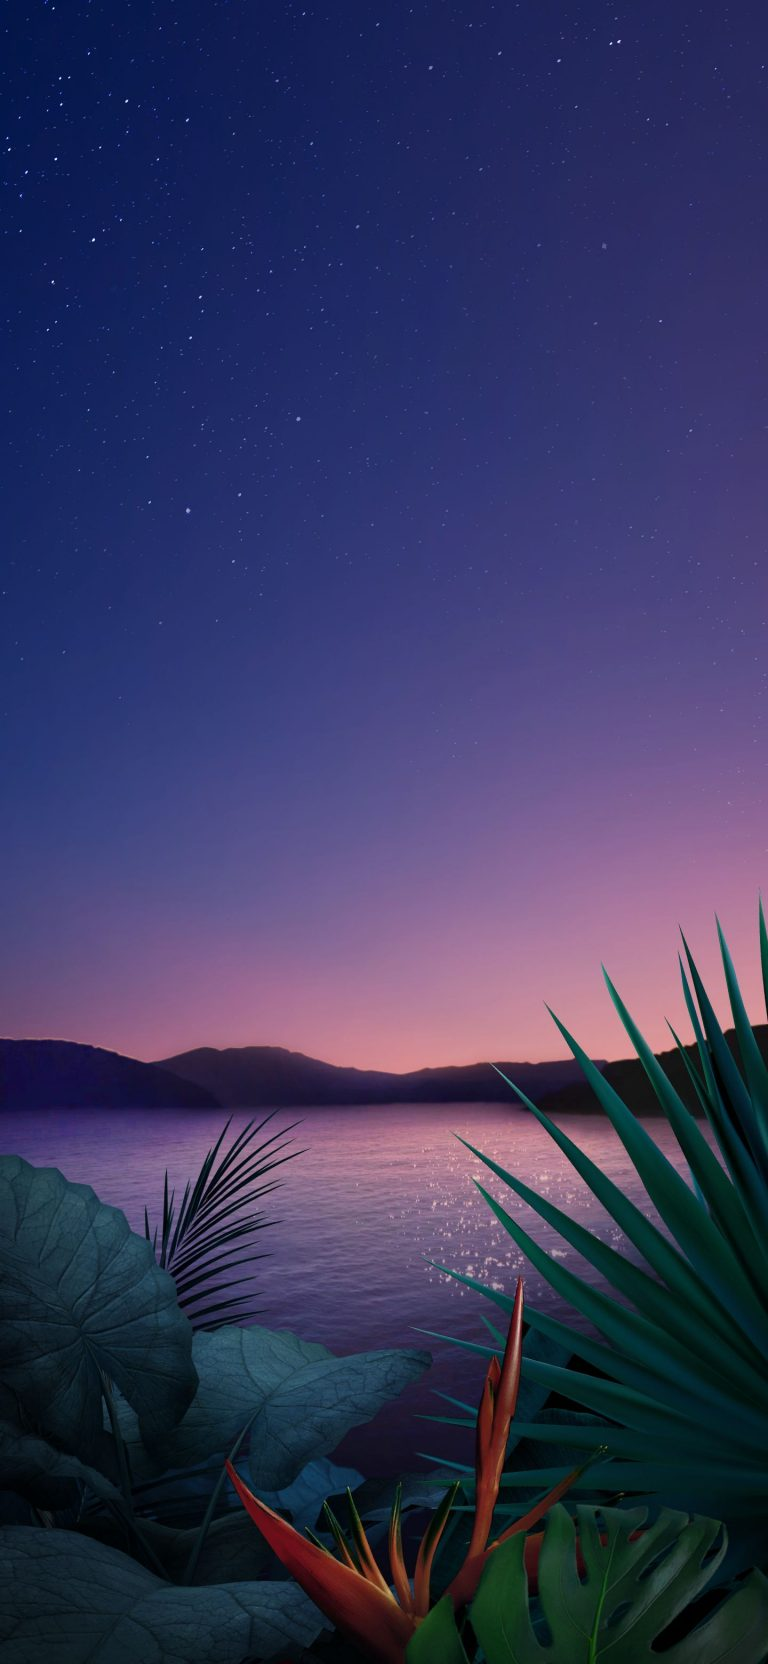 LG G8 ThinQ Stock Wallpaper 15 1440x3120 768x1664